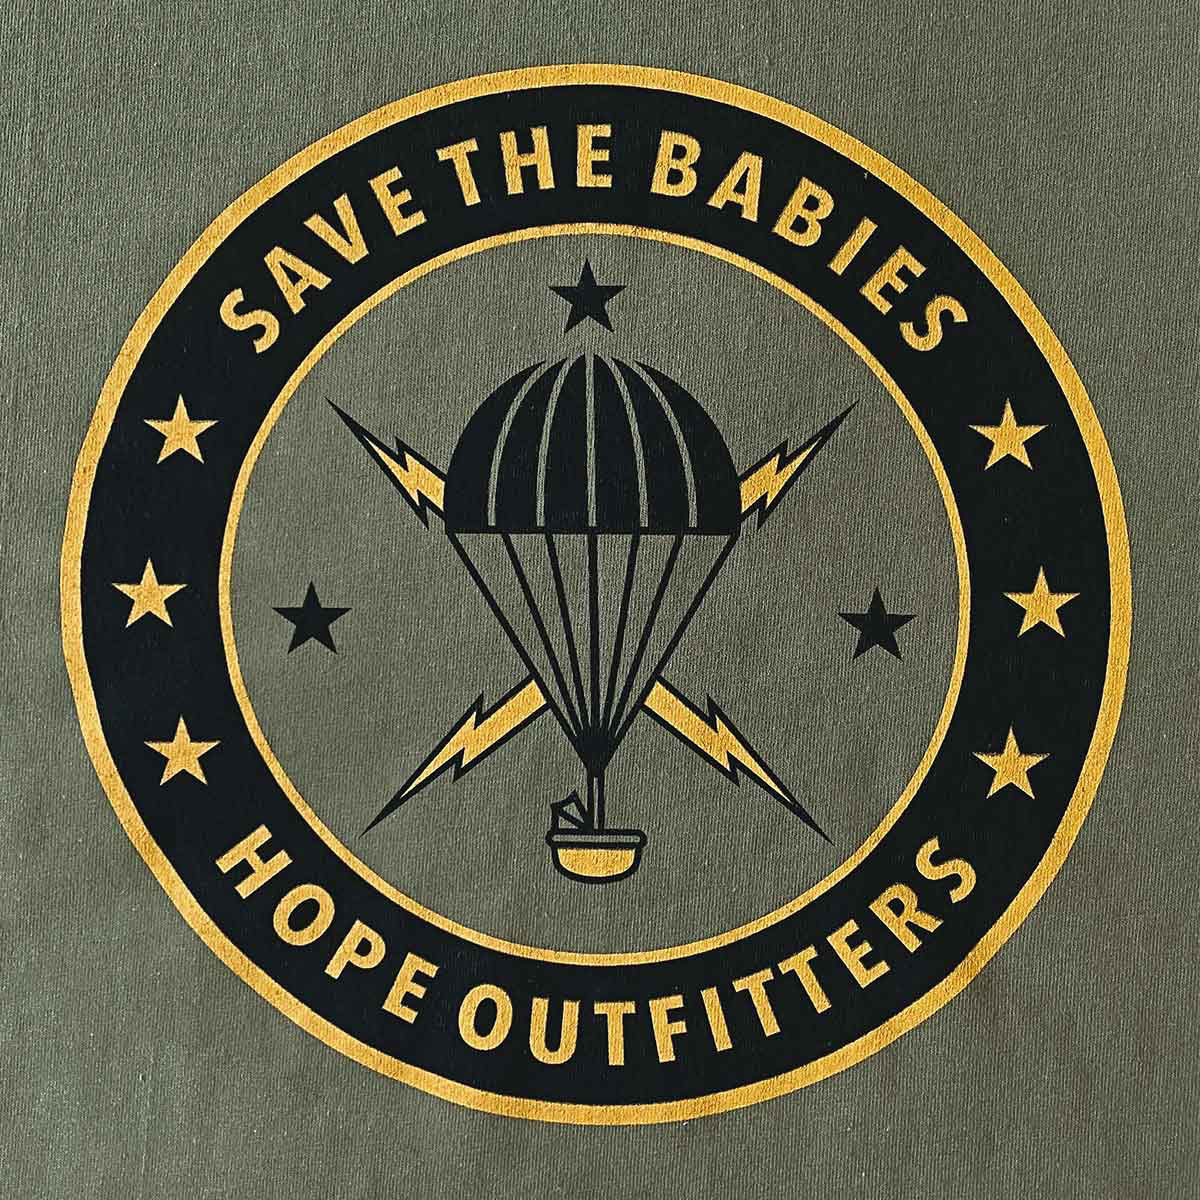 New Parachute Save The Babies Tee!